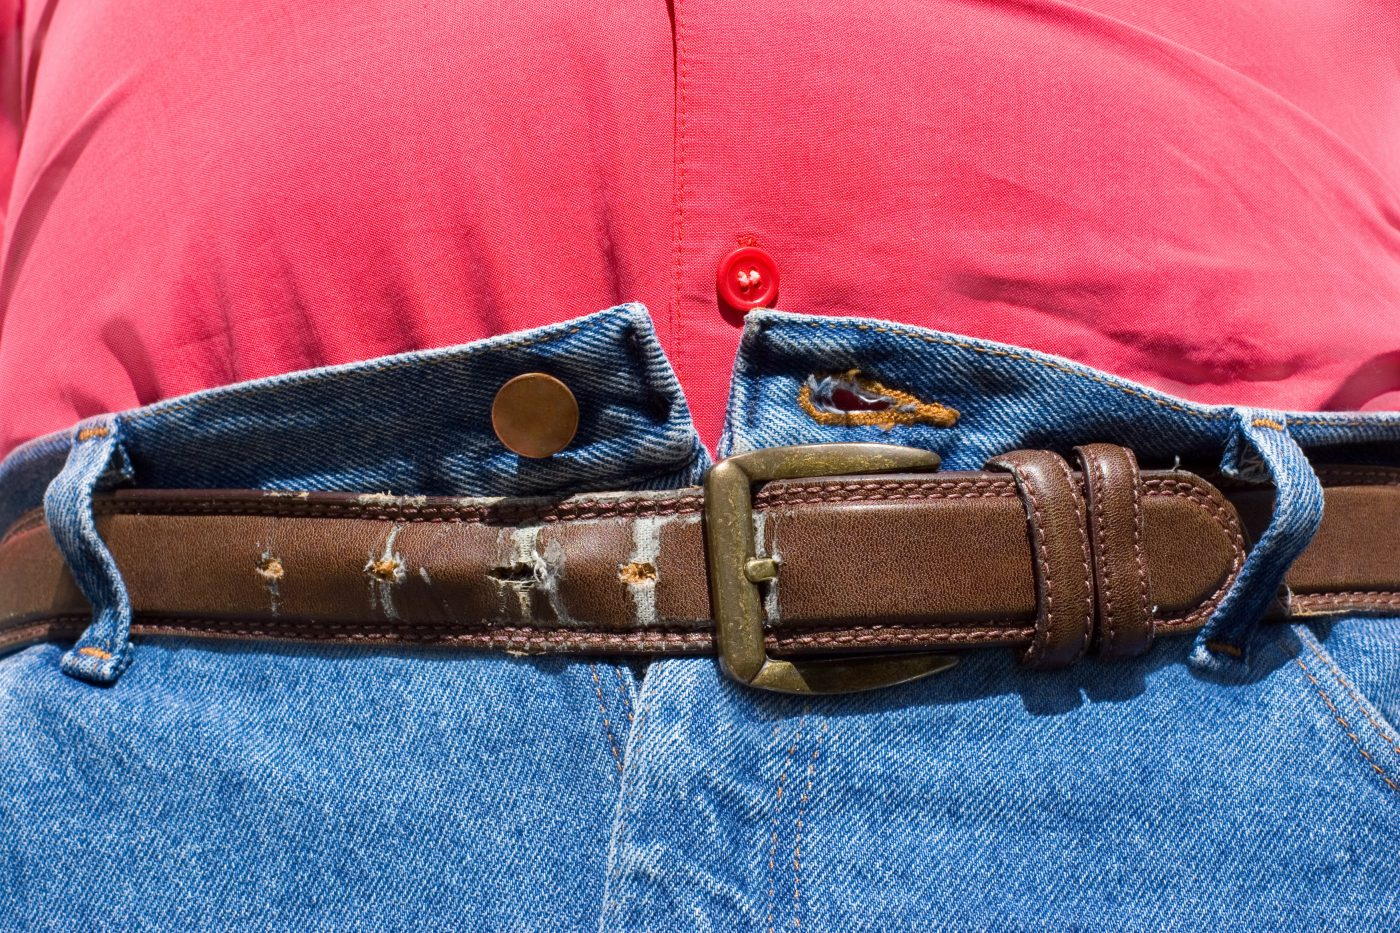 Obesity in African American Men Linked to Increased Prostate Cancer Risk